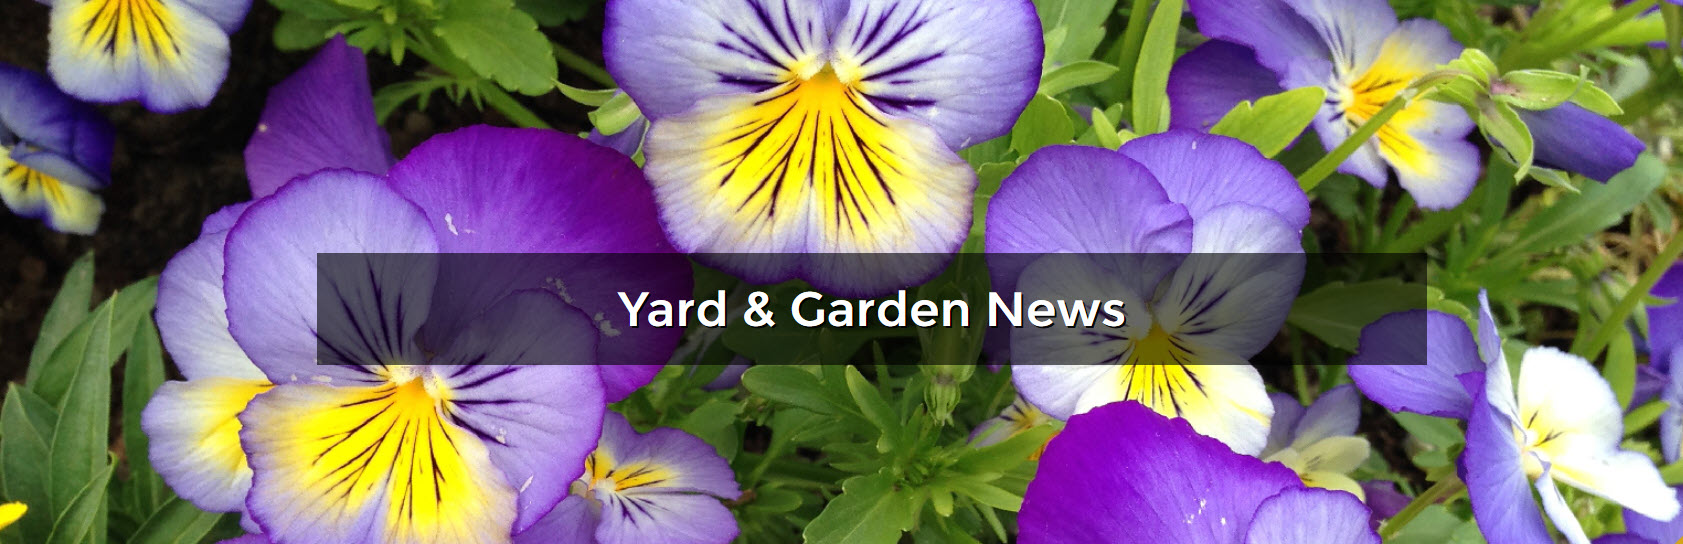 Yard and Garden News Banner of flower blooms